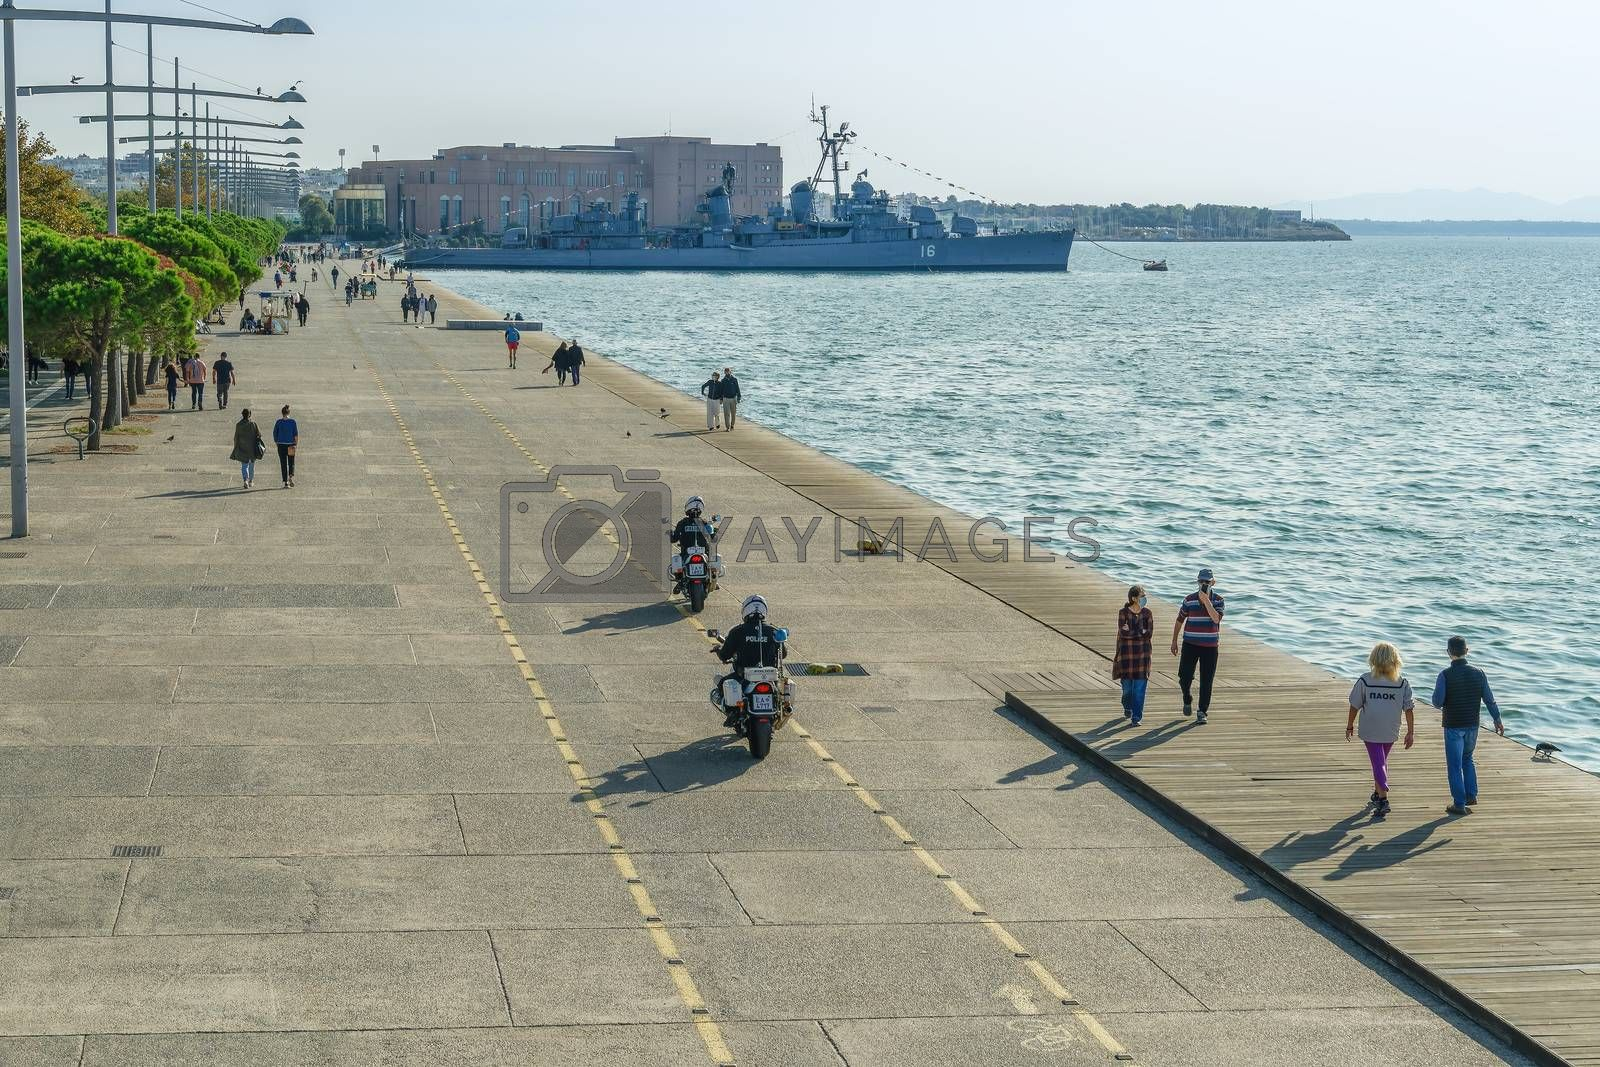 Unidentified persons with face protection walk on the pedestrian area of the city waterfront in Thessaloniki, Greece.